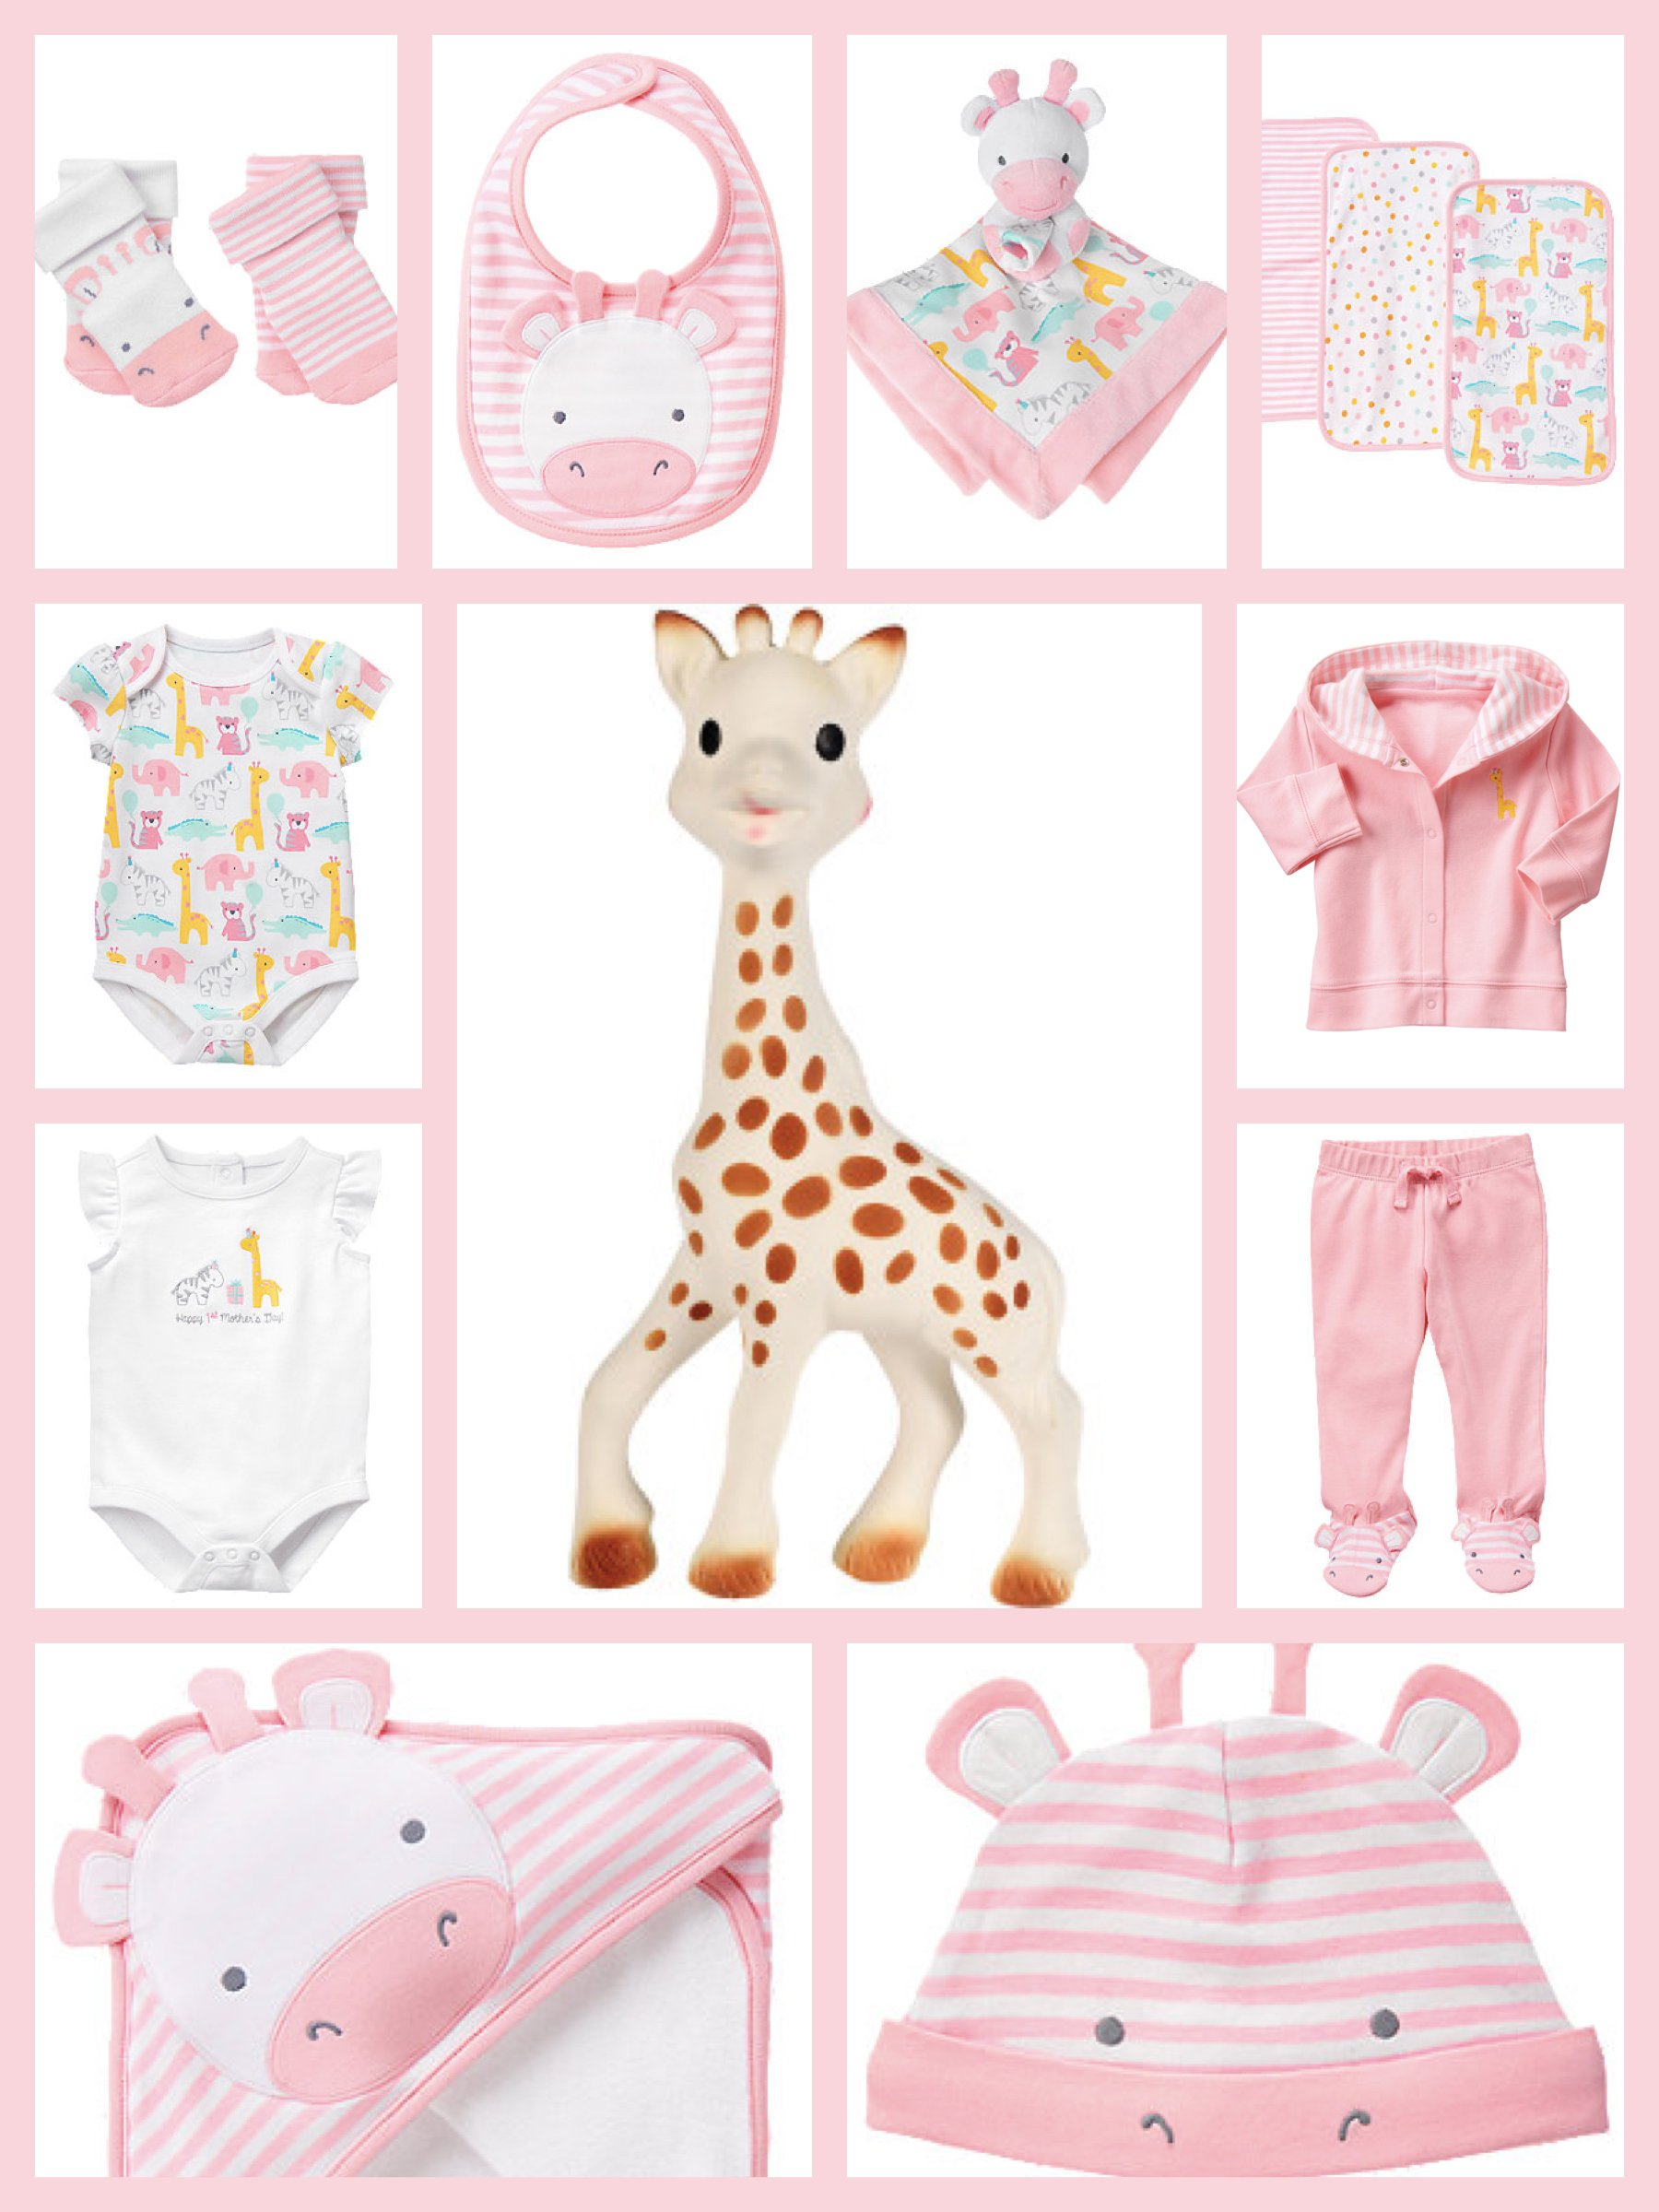 The Search for the Perfect Baby Shower Gift